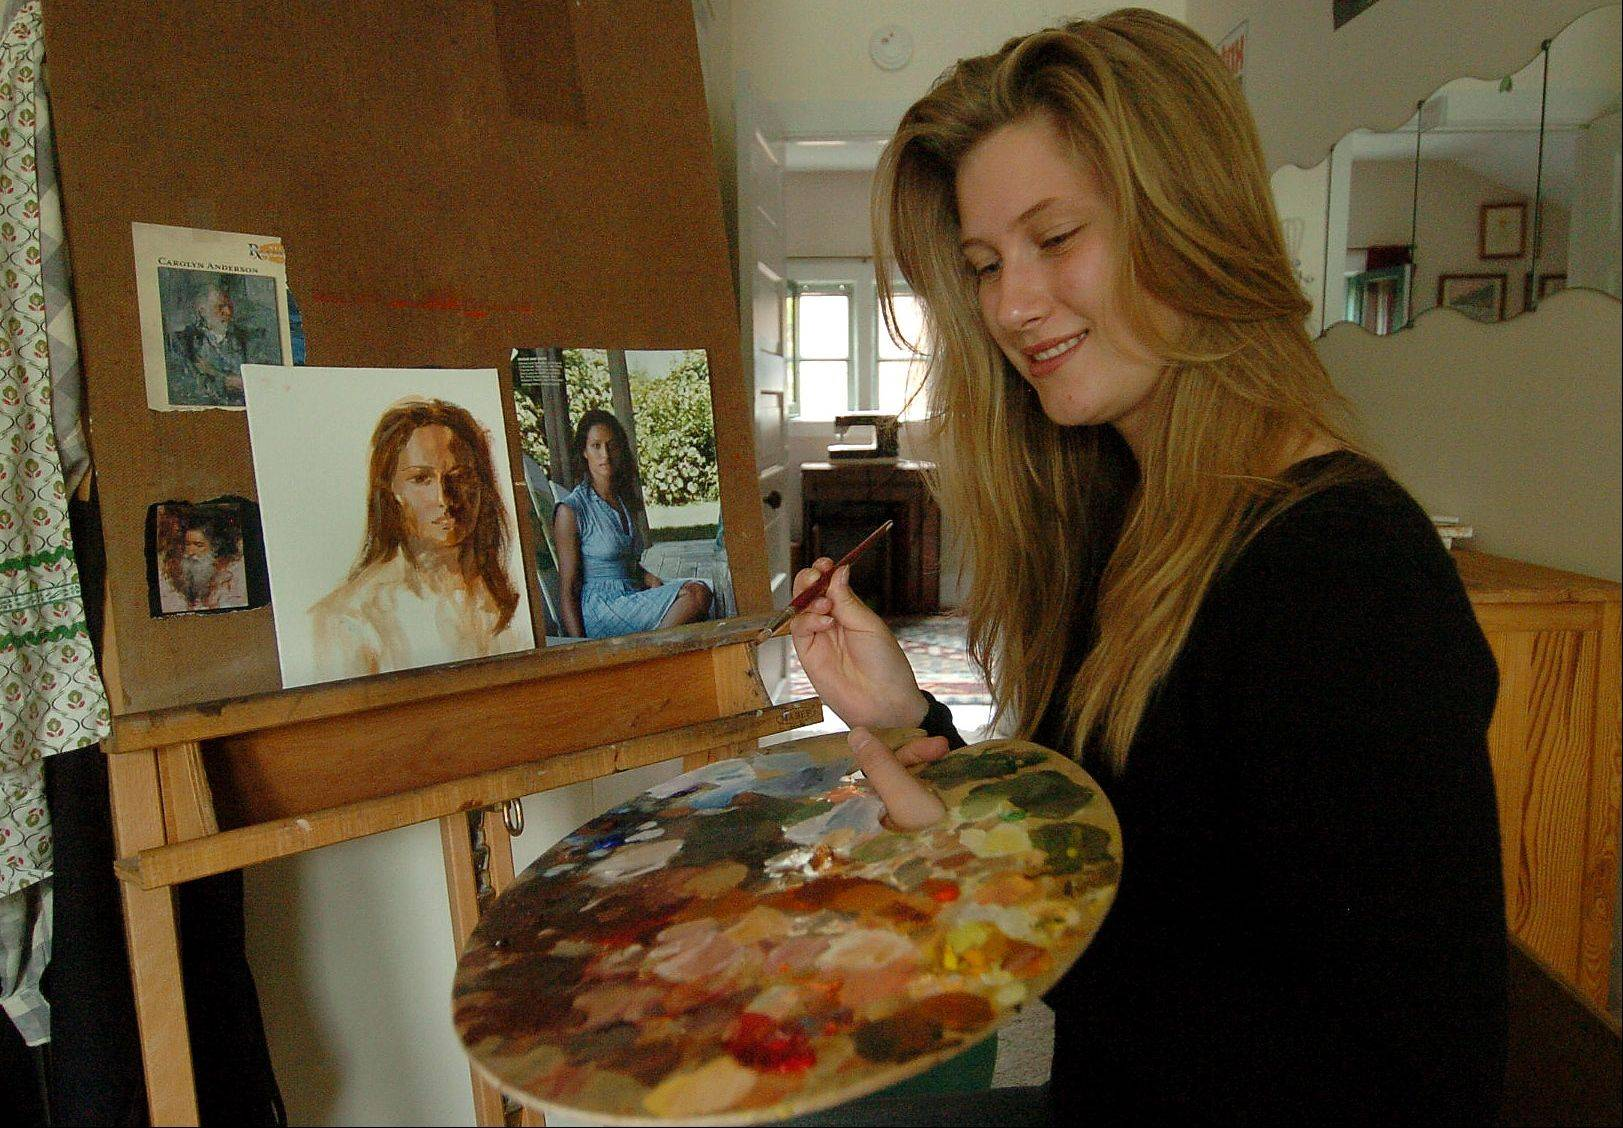 Lucy Miller is a talented artist but also managed to lead Larkin High School's graduating class as its valedictorian.